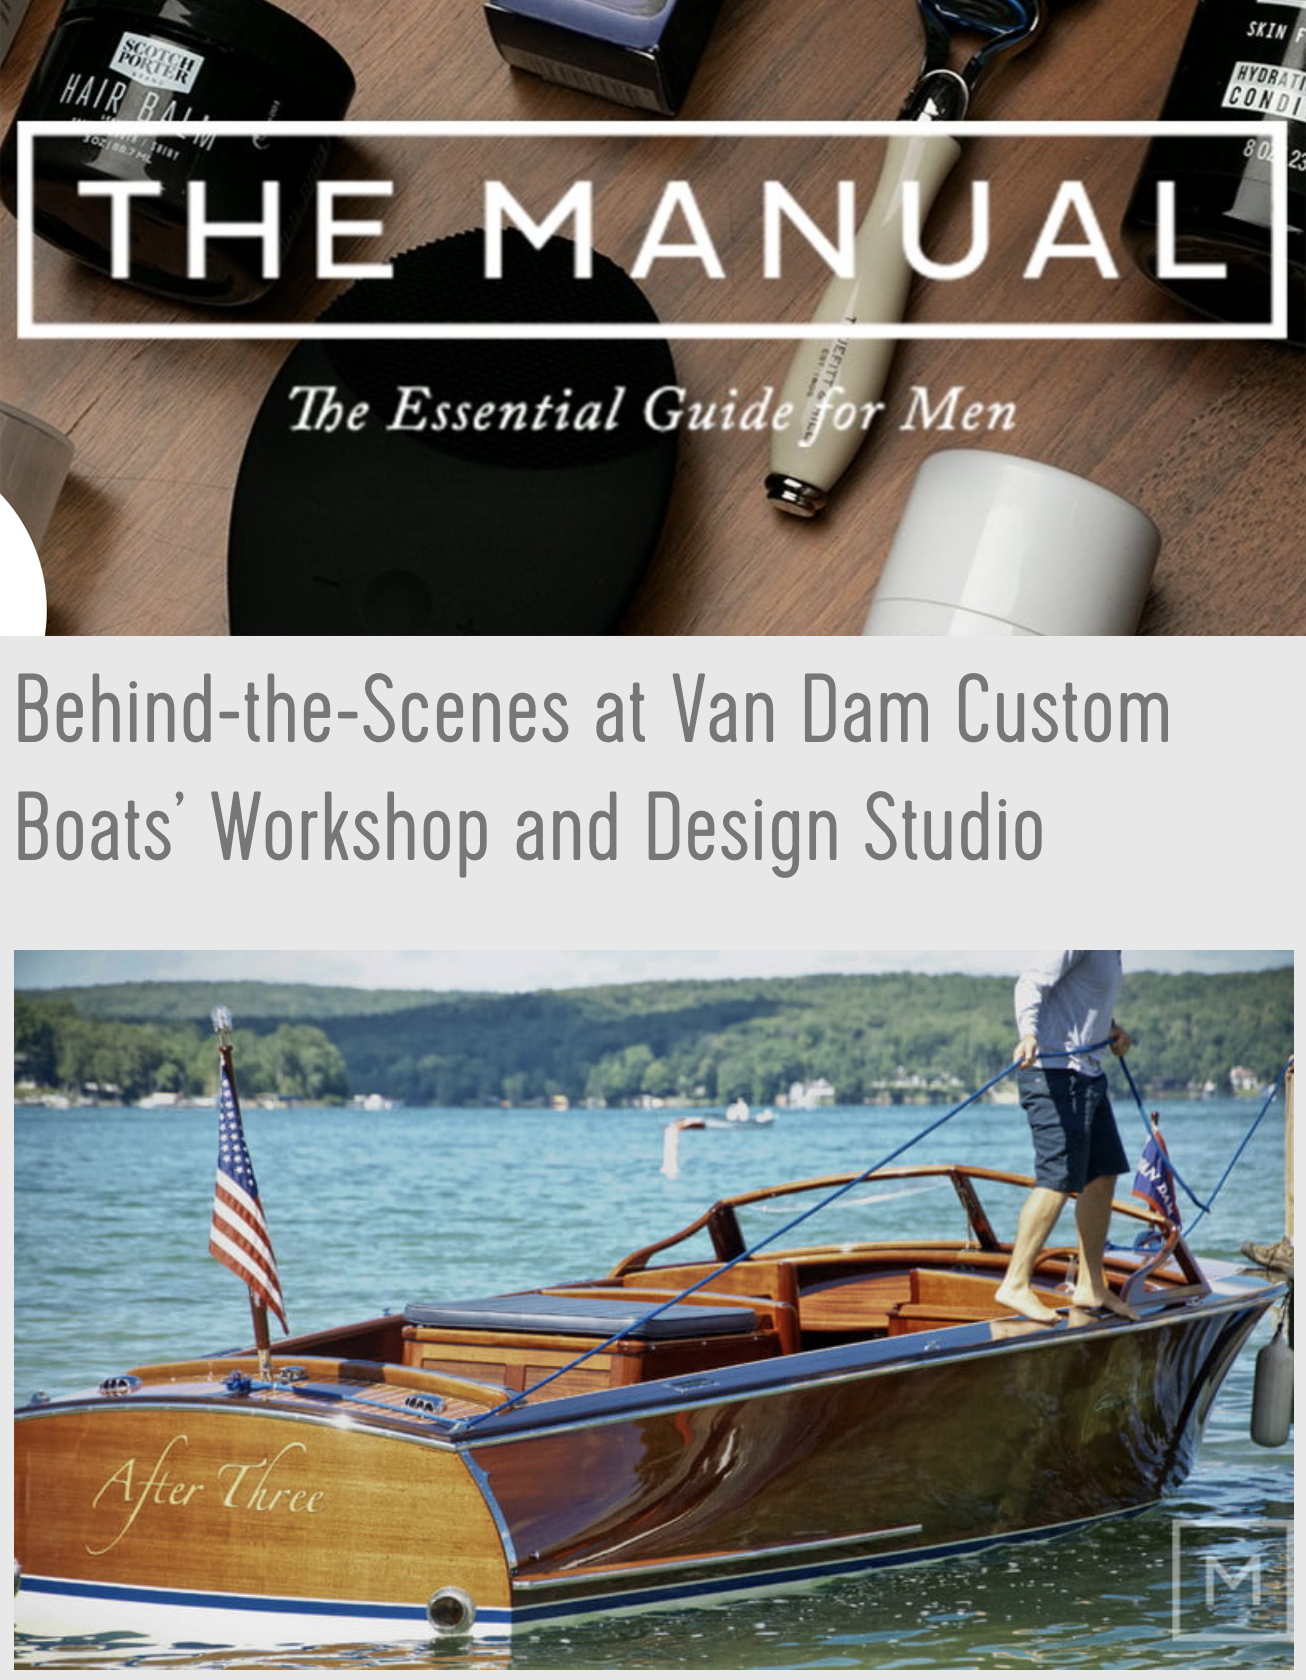 Cover of The Manual magazine.